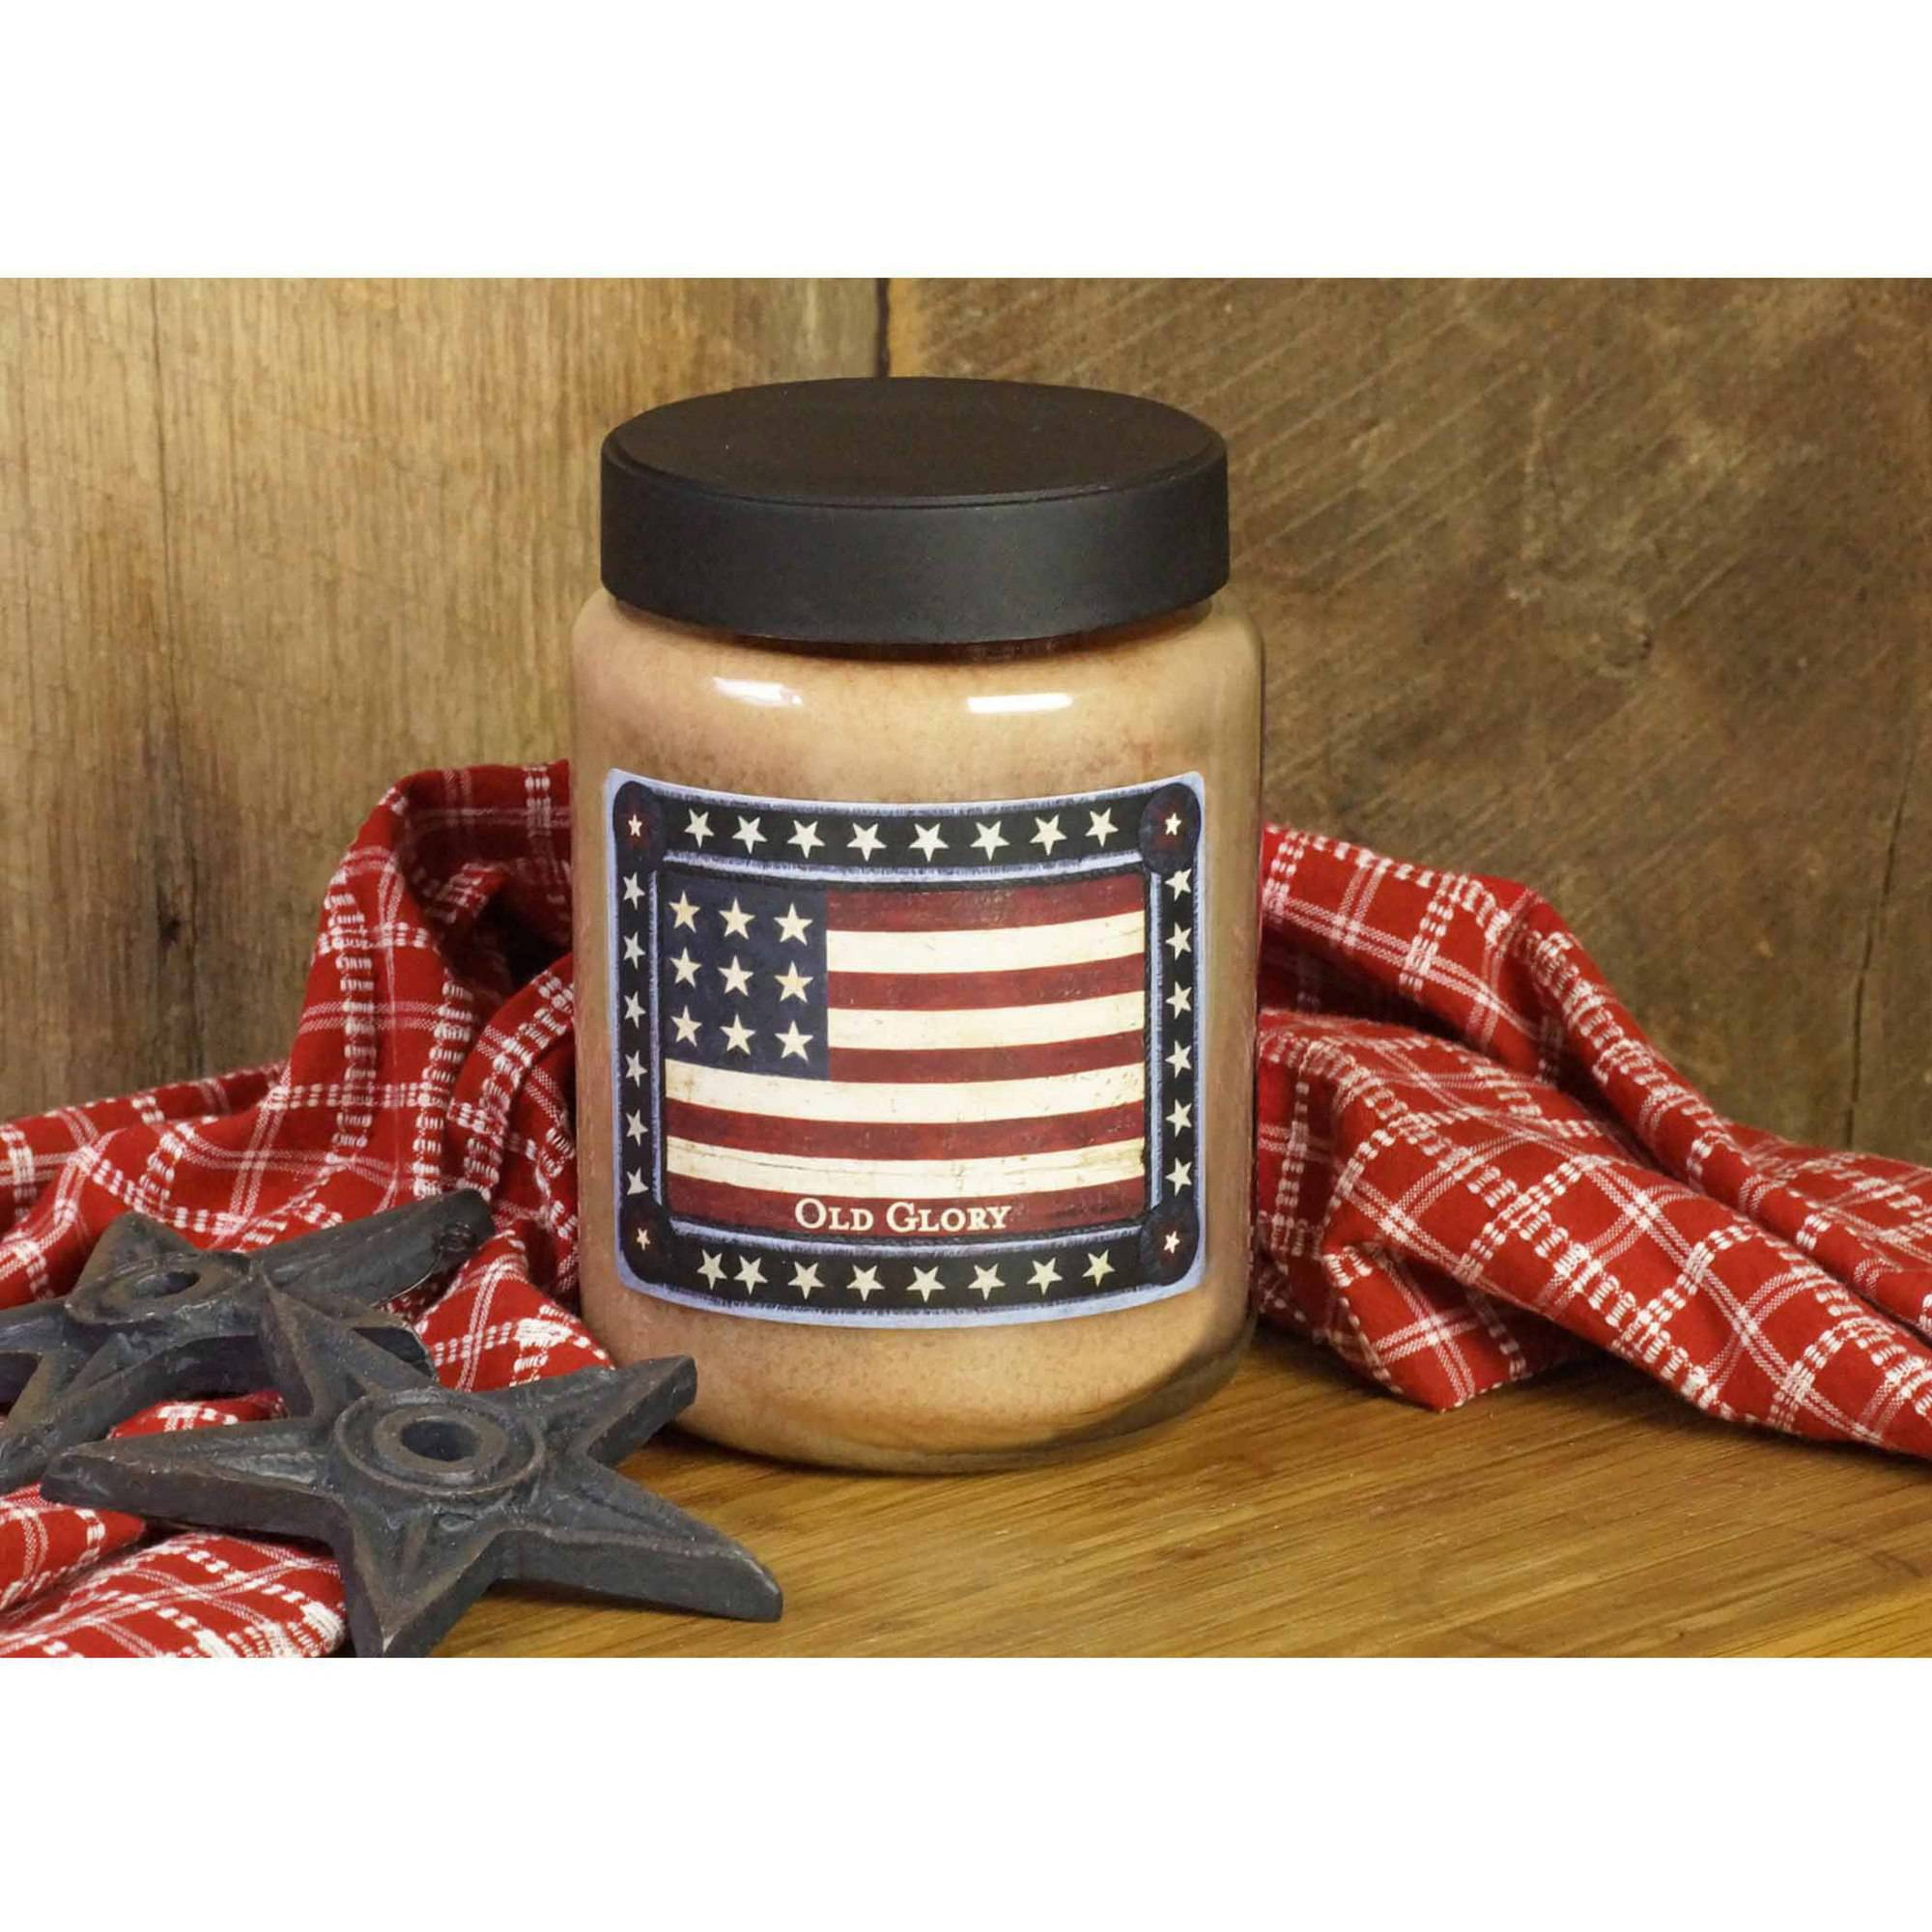 LANG Old Glory 26-Ounce Jar Candle, Scented with Sweet Raisins, Vanilla and a Pinch of Clove